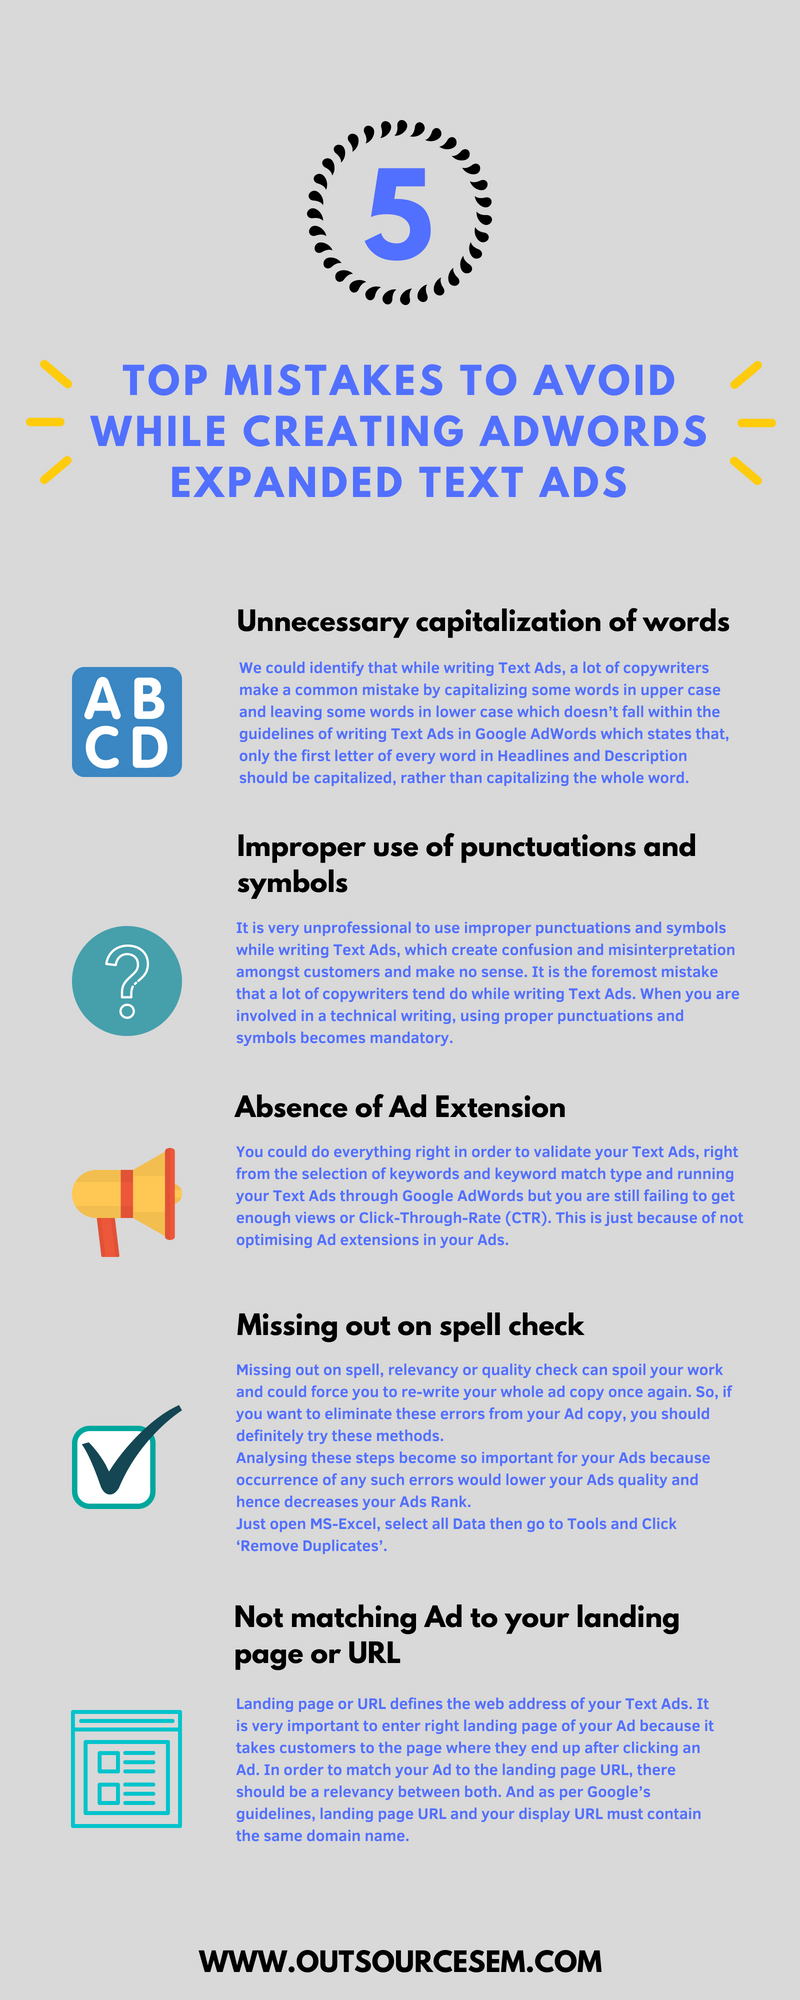 Top Mistakes To Avoid While Creating Adwords Expanded Text Ads